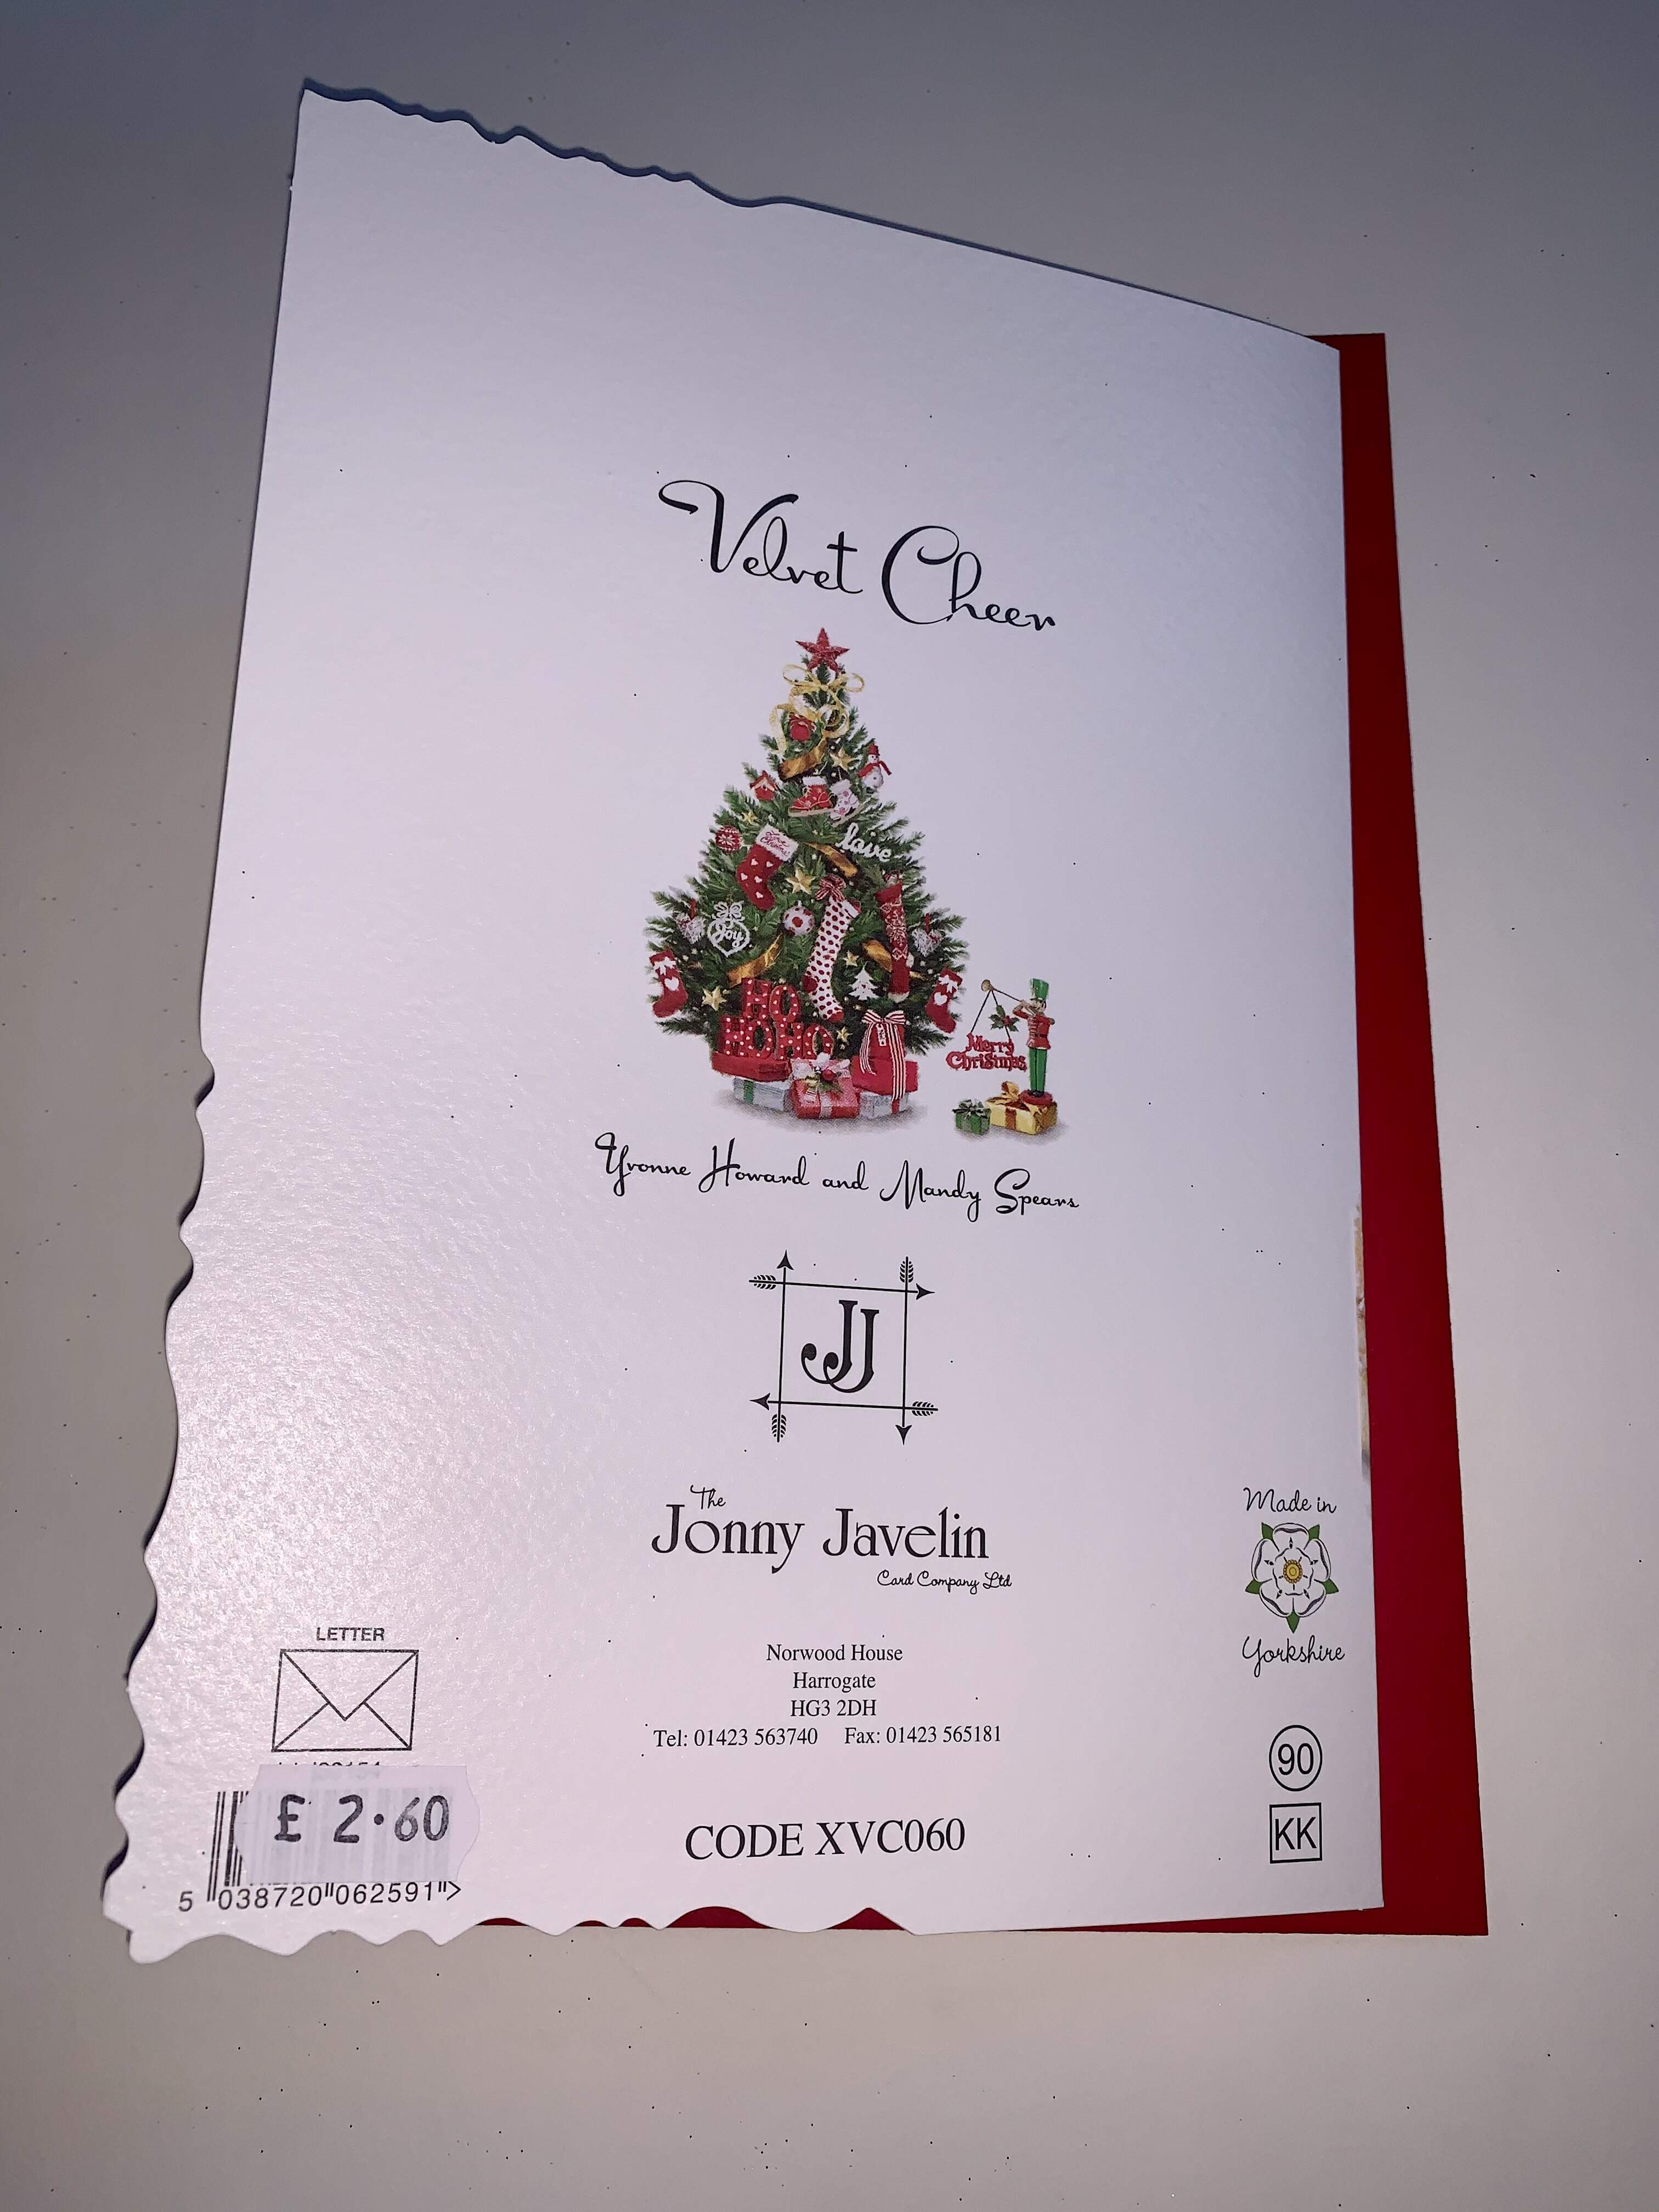 Jonny Javelin Nephew and Wife Christmas Card